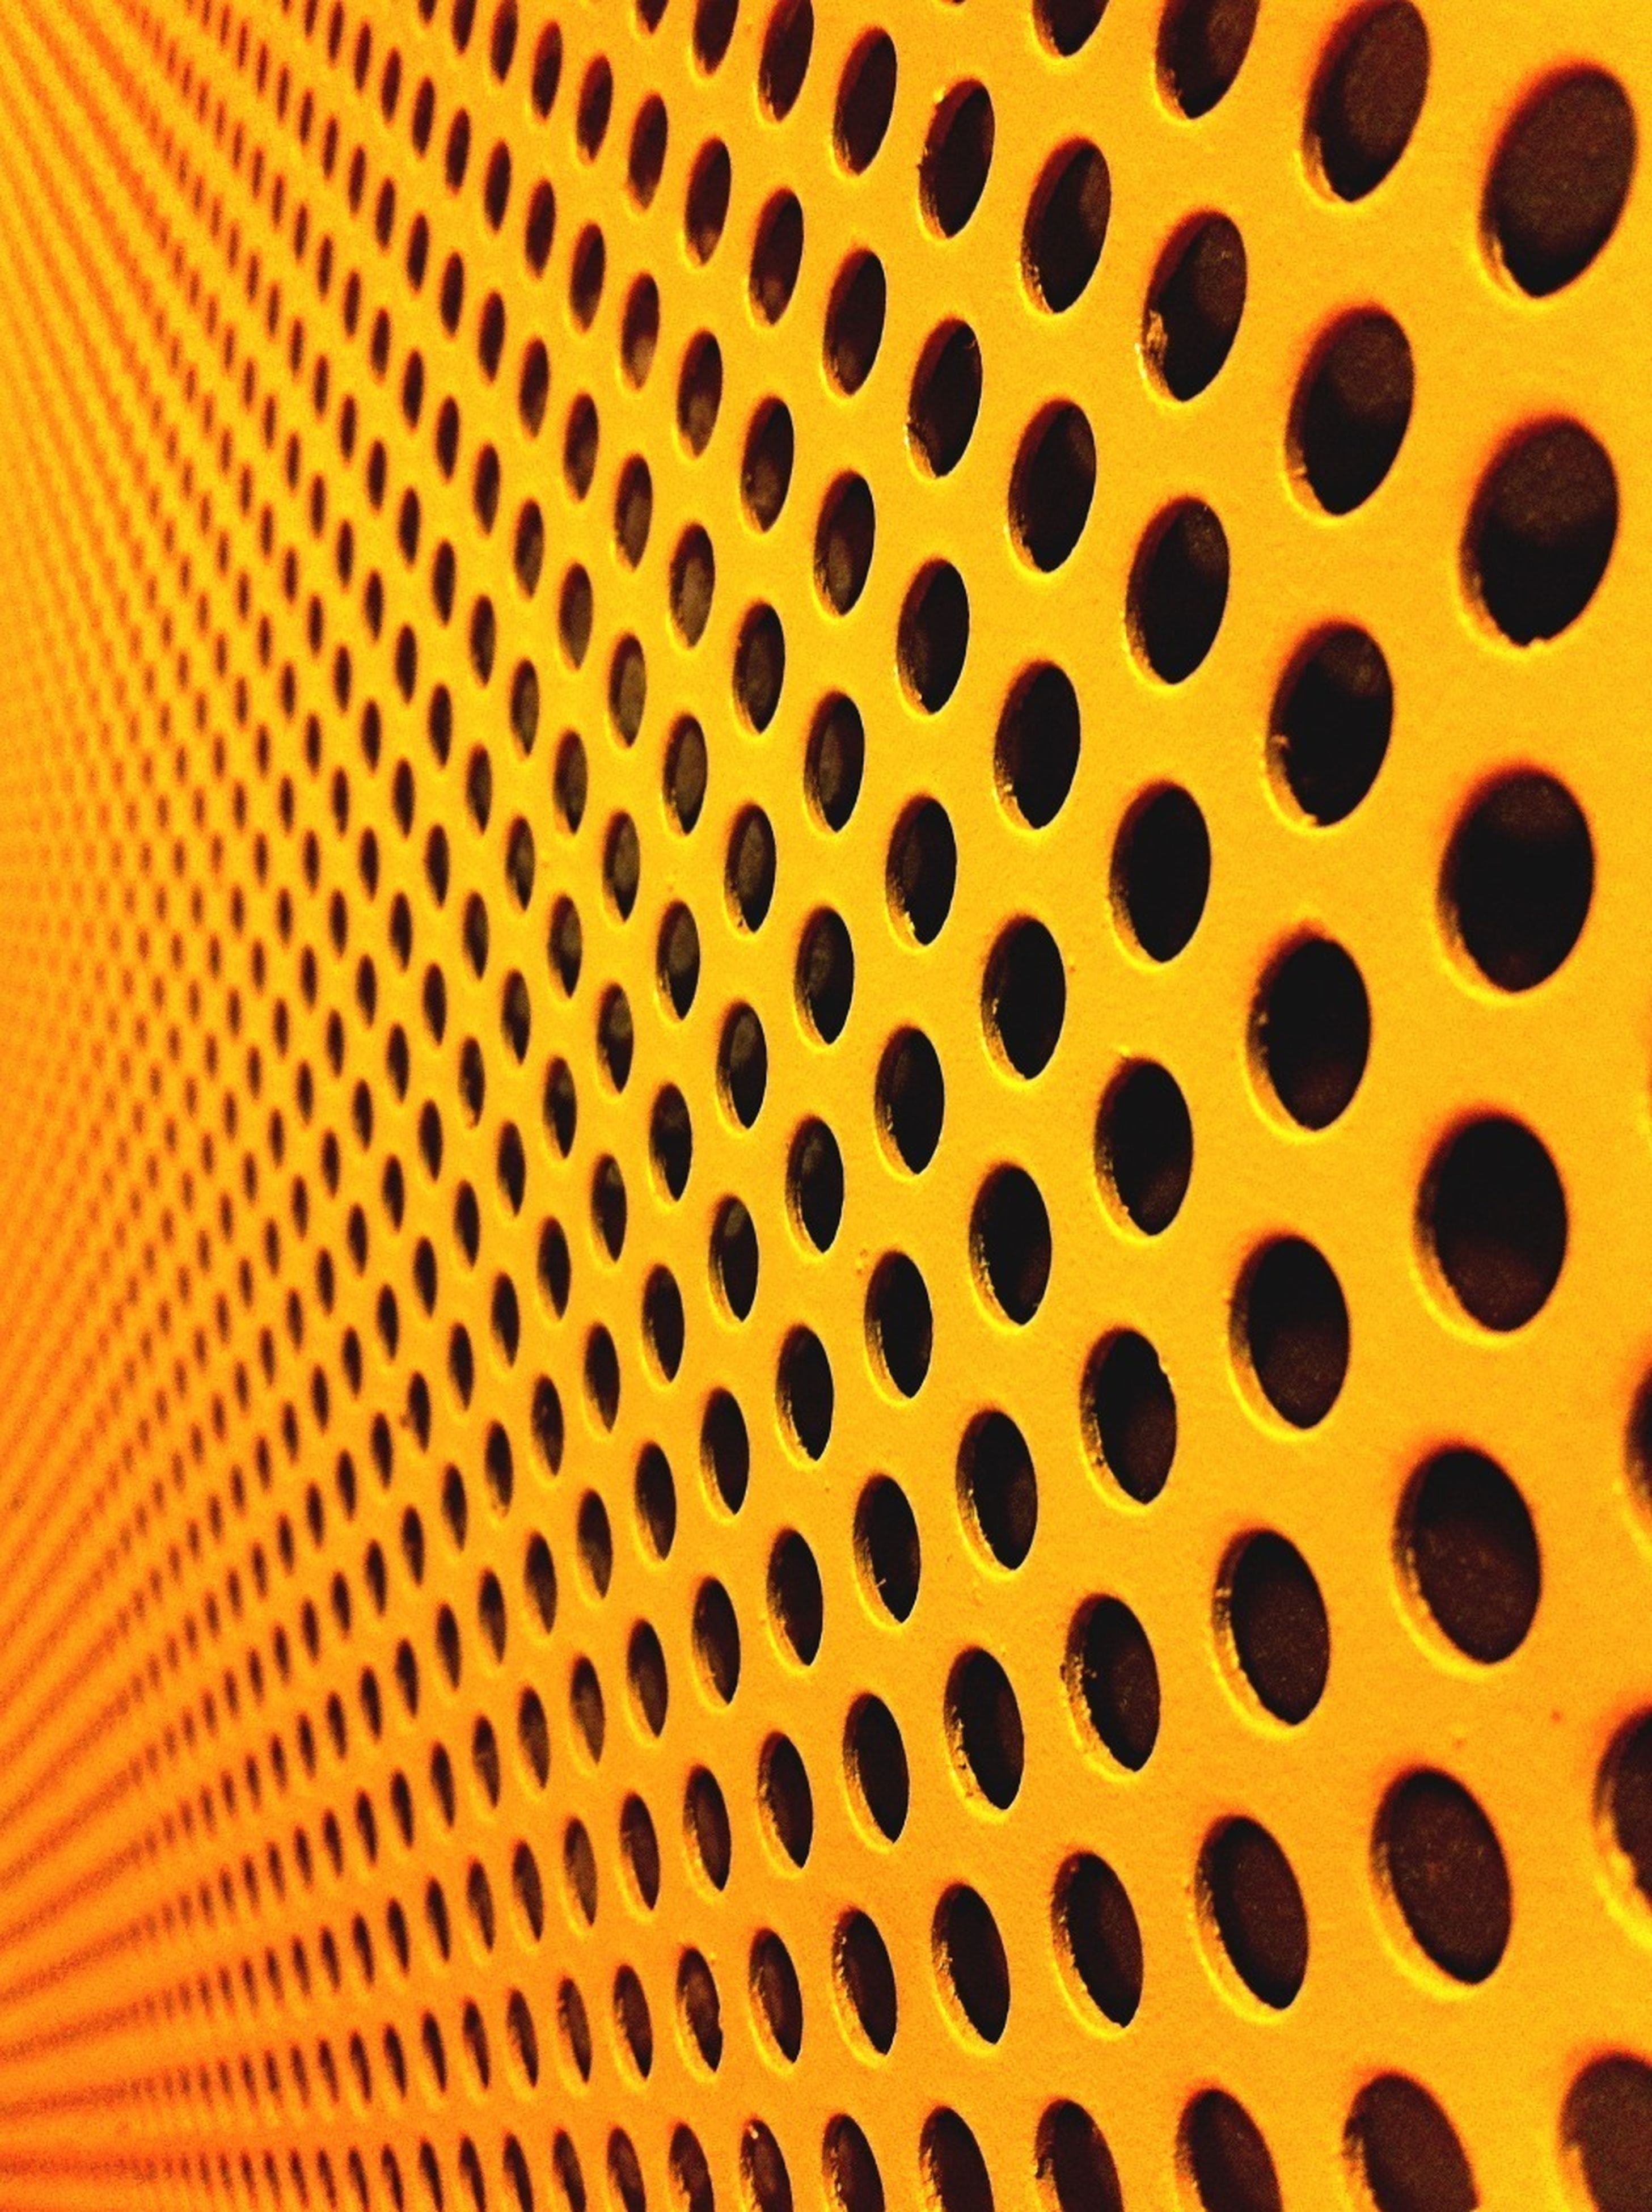 indoors, pattern, full frame, backgrounds, yellow, textured, design, repetition, metal, close-up, geometric shape, metallic, circle, wall - building feature, built structure, architecture, no people, in a row, shape, ceiling